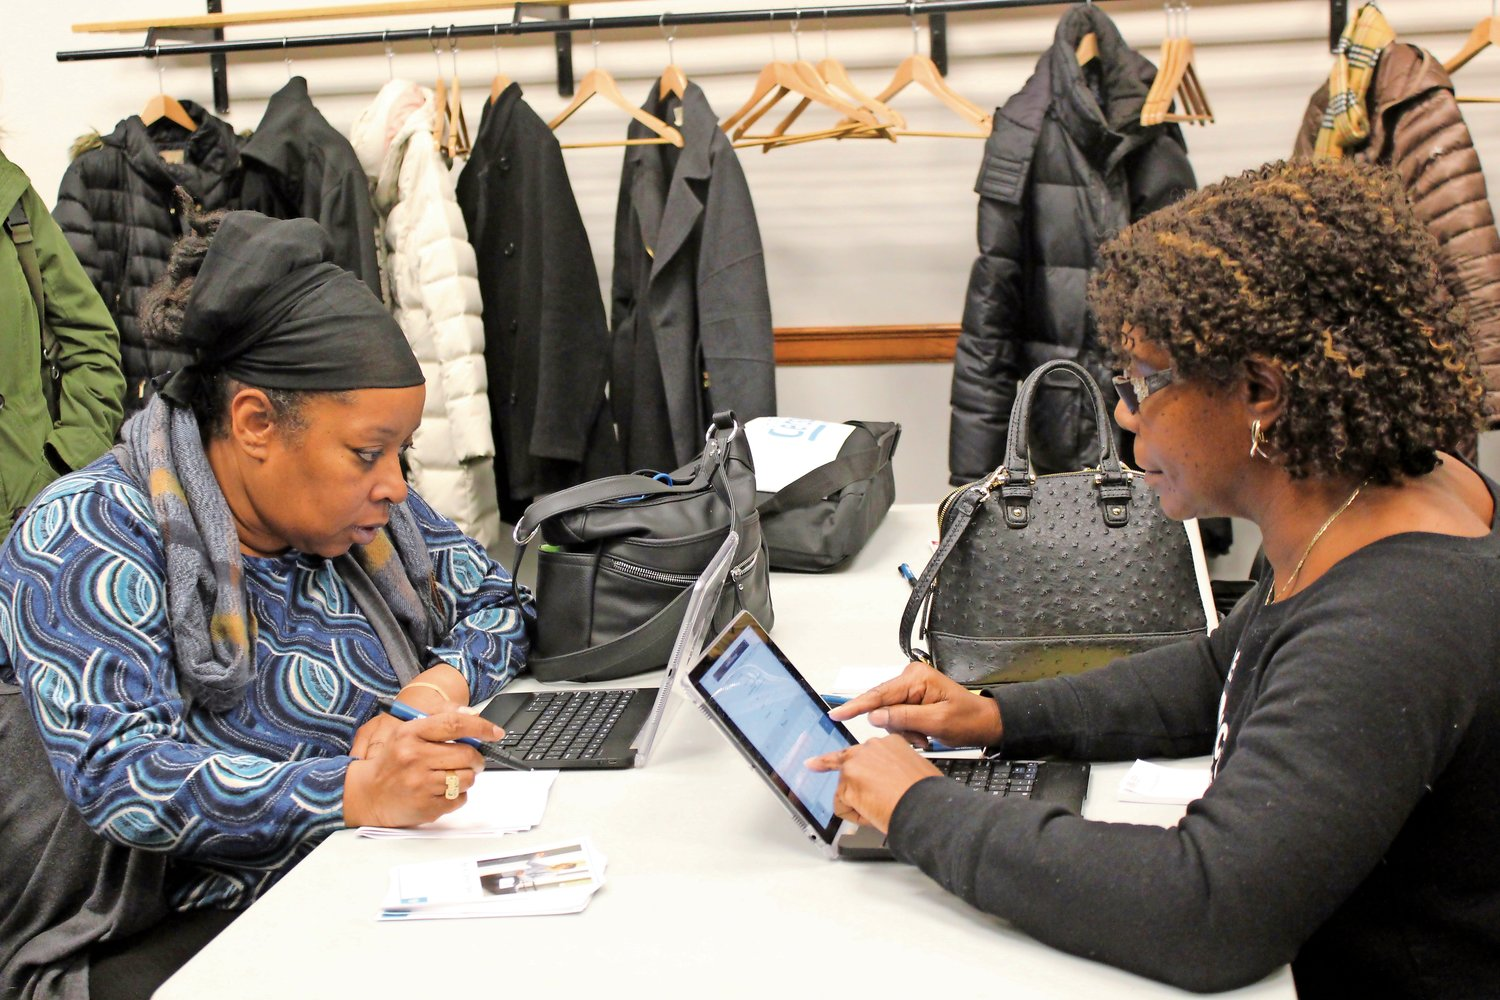 Gail Johnson and Deborah Krider applied for jobs with the U.S. Census Bureau on Jan. 30.